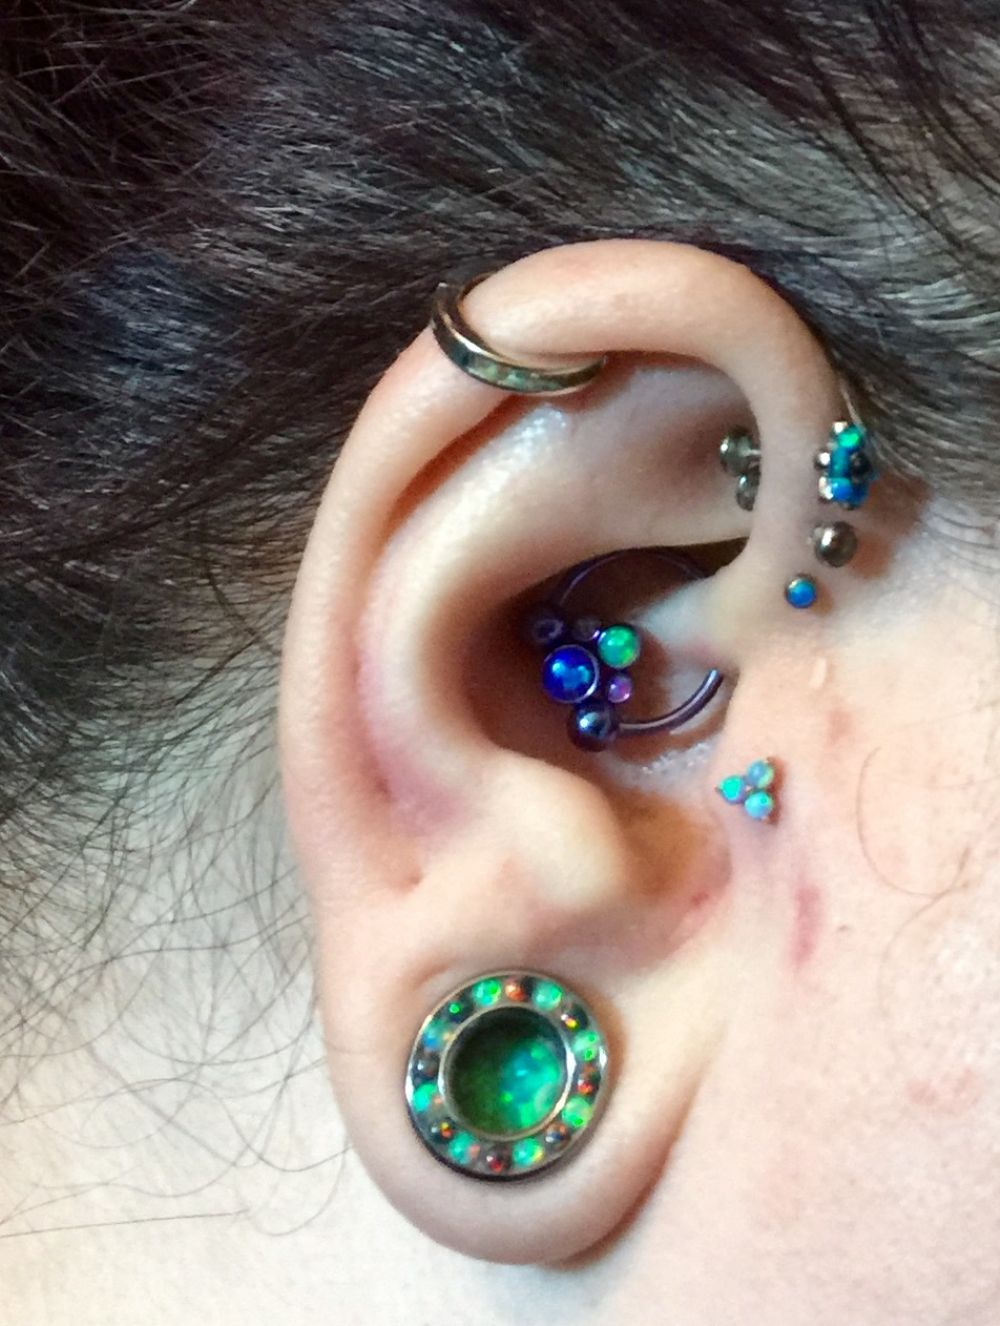 """16g  3/16"""" center - 3mm bottom - 2mm sides PRE-ORDER Titanium Circular Barbell with Cluster Center -- Photo # 79515"""